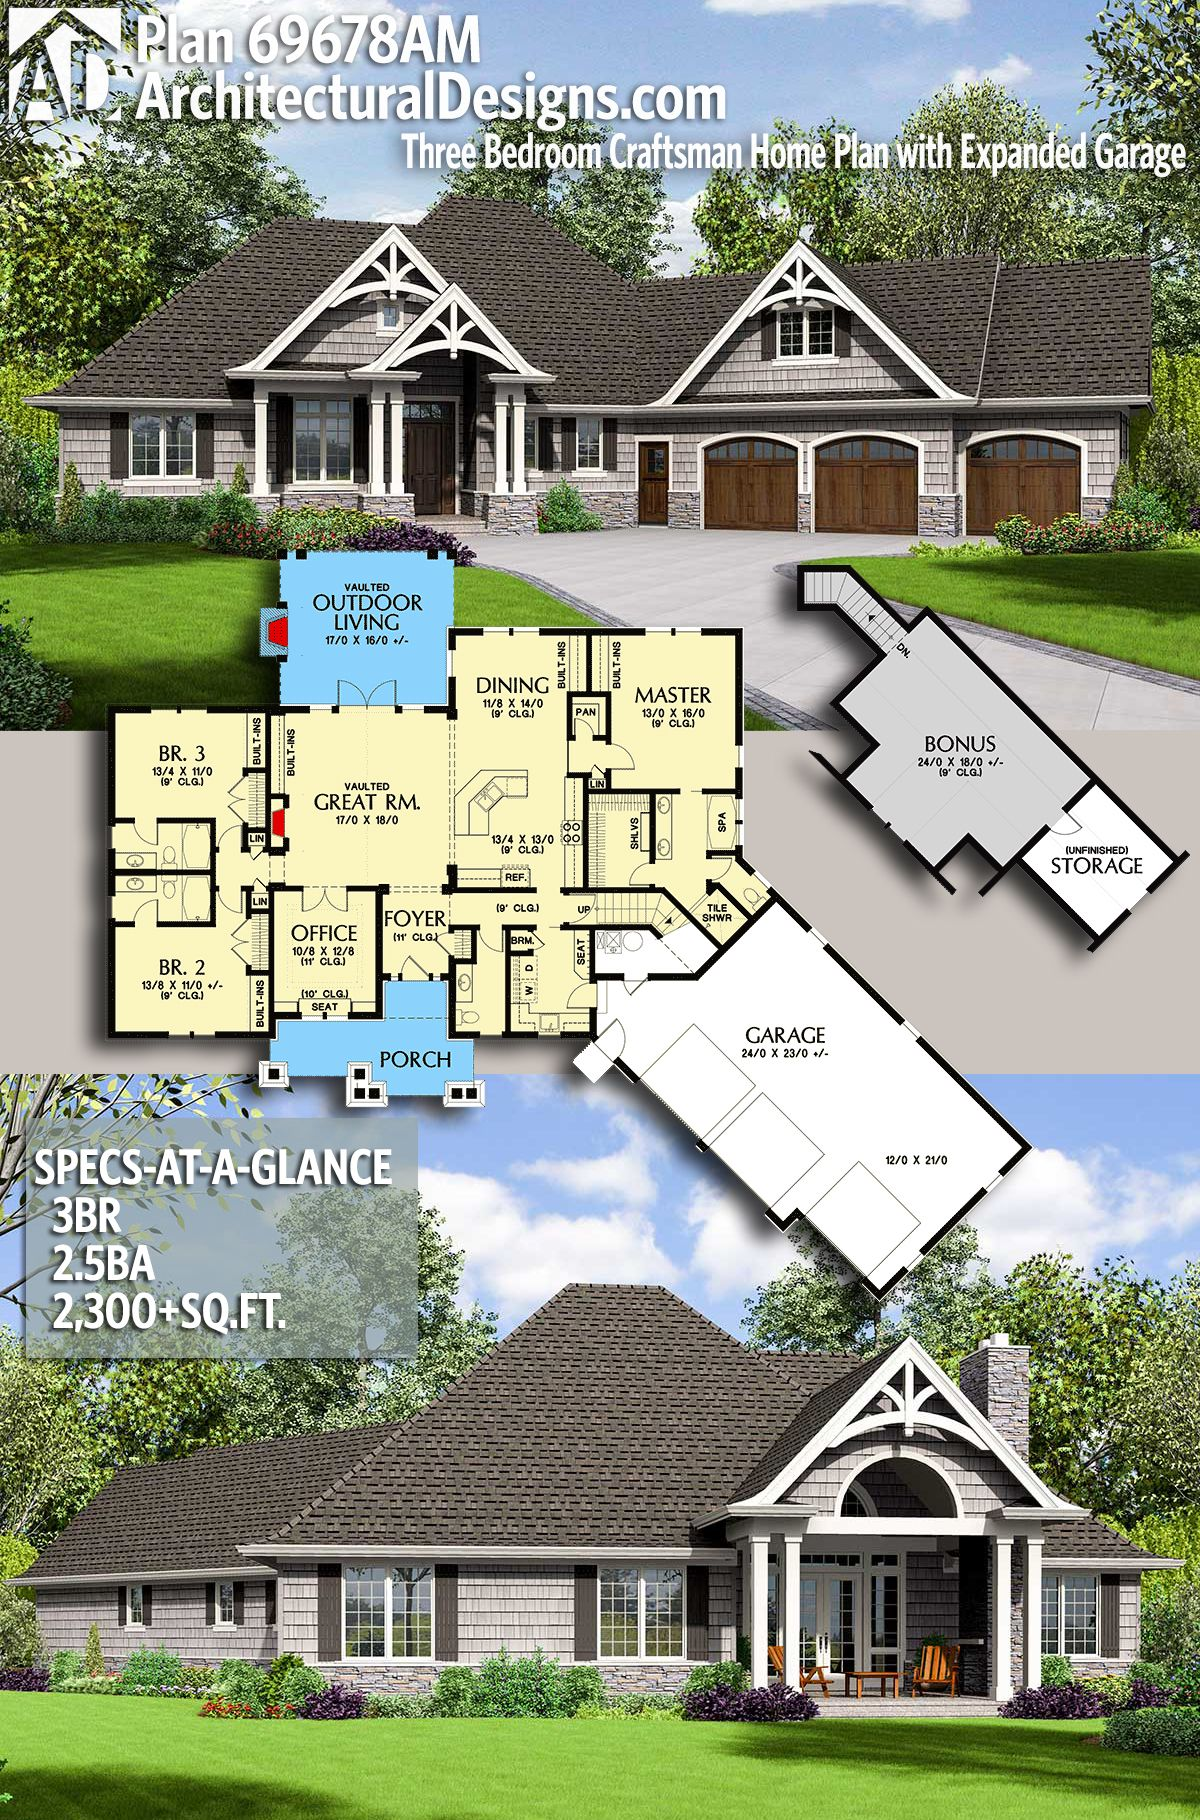 Plan 69678am Three Bedroom Craftsman Home Plan With Expanded Garage In 2021 Craftsman House Plans Craftsman Style House Plans Ranch House Plans